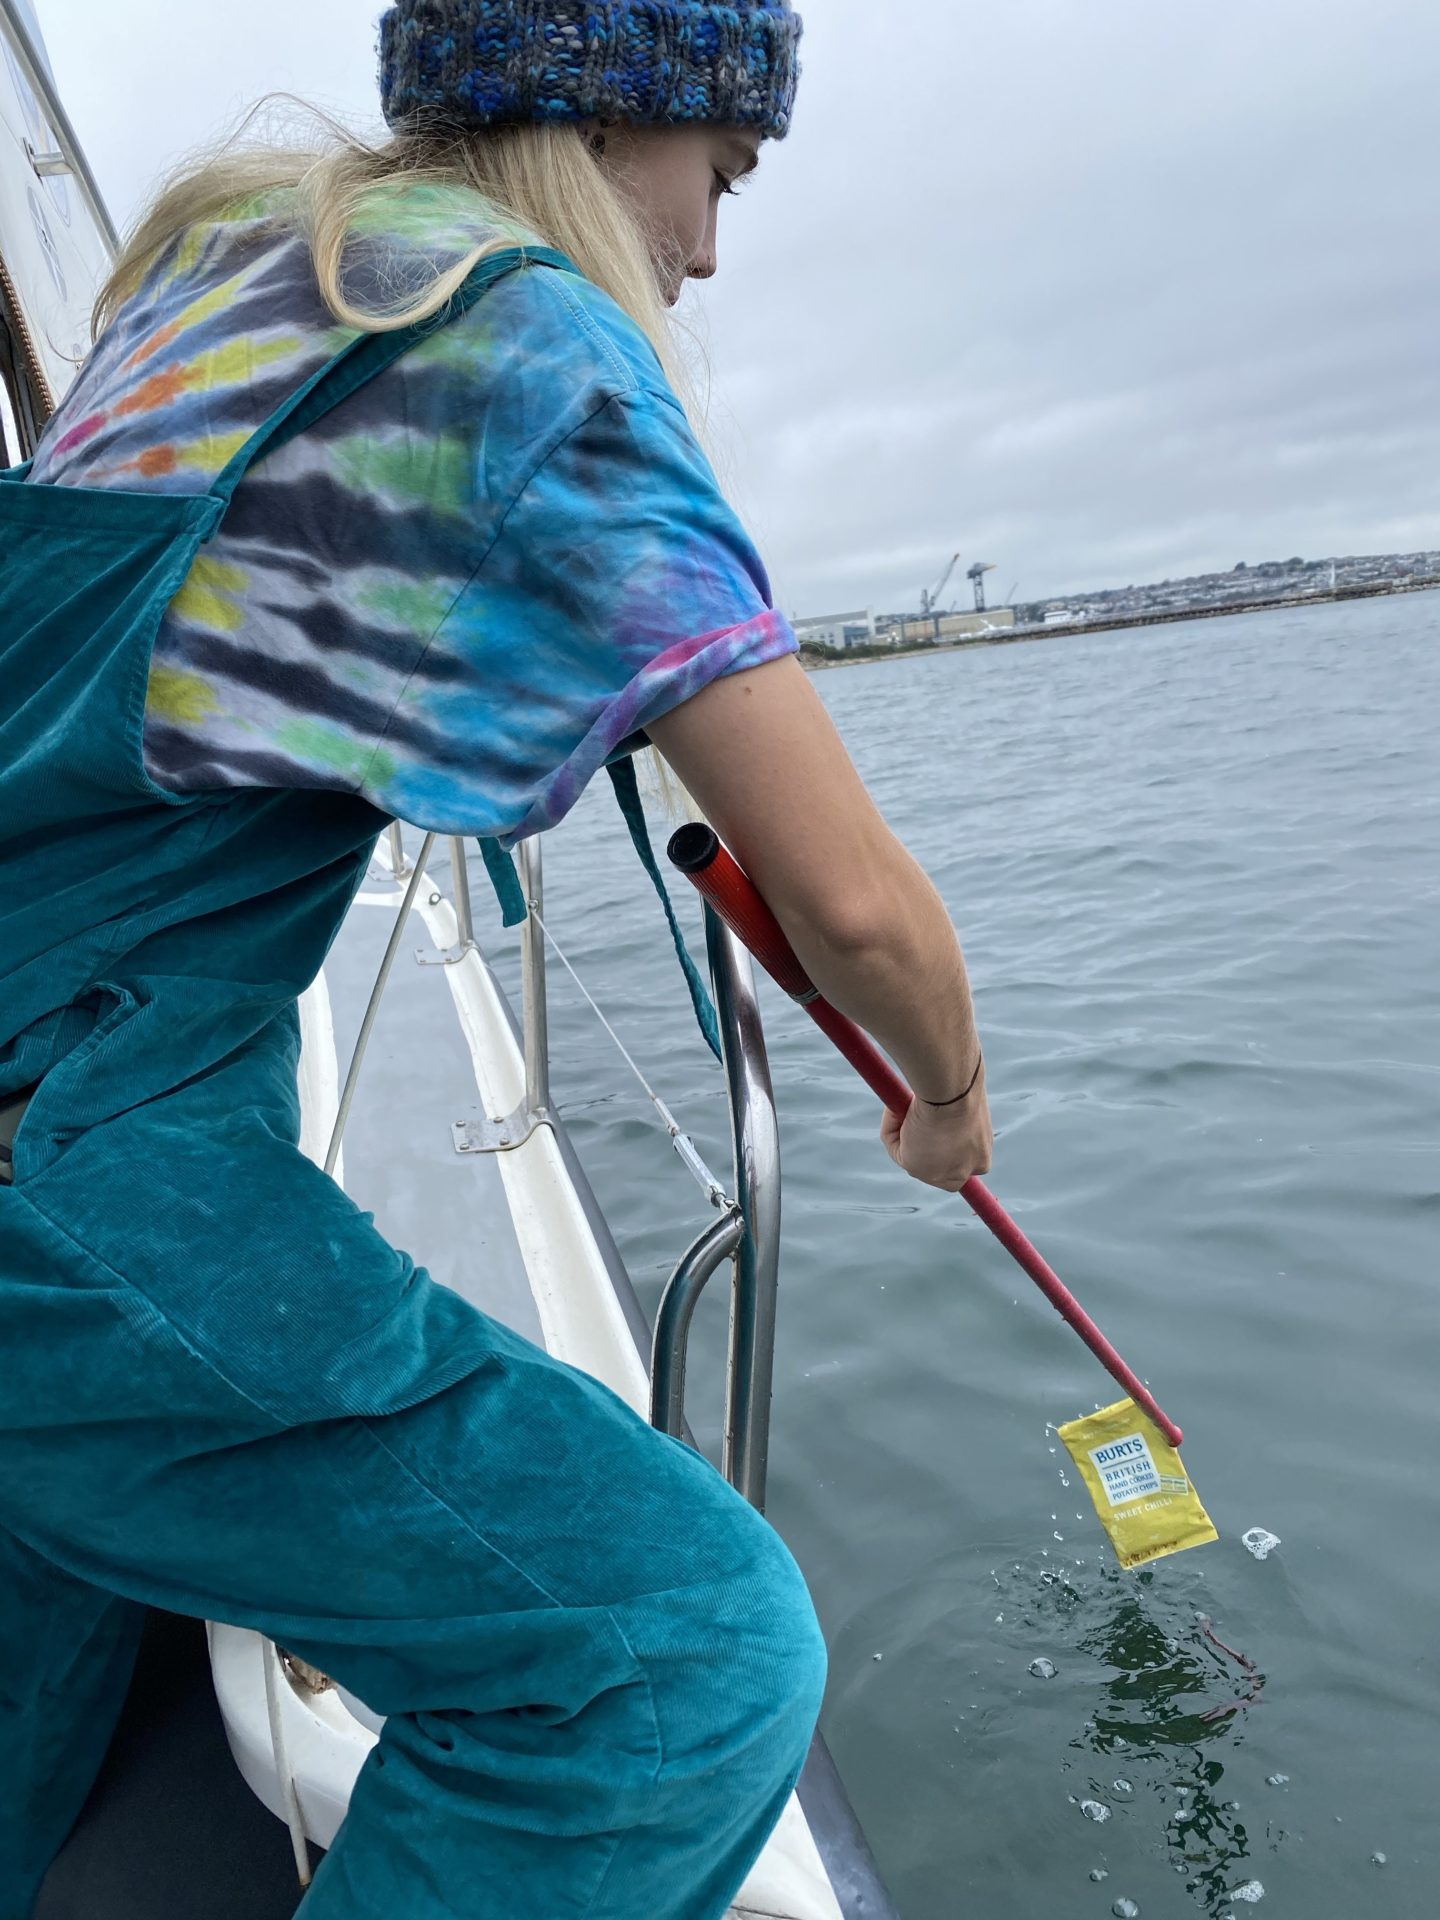 Emily of Beach Guardian trawling for microplastics